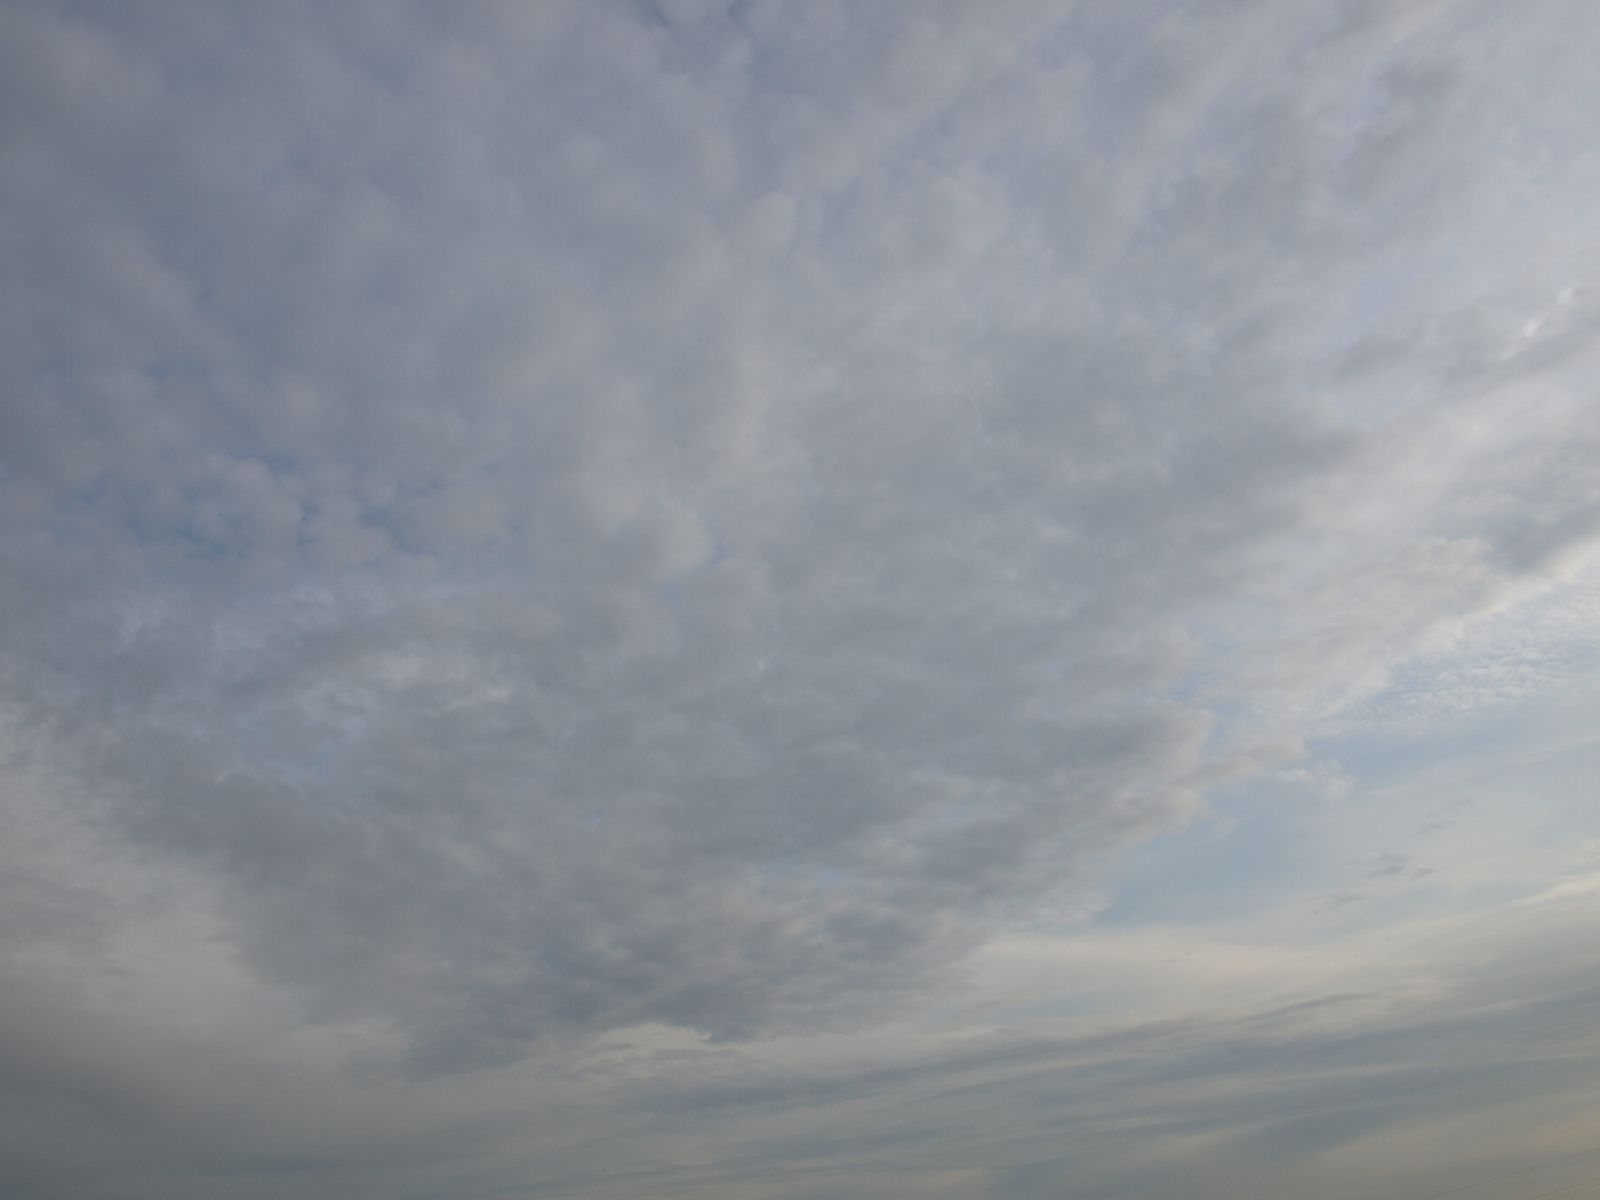 Sky_Clouds_Photo_Texture_A_P8174445